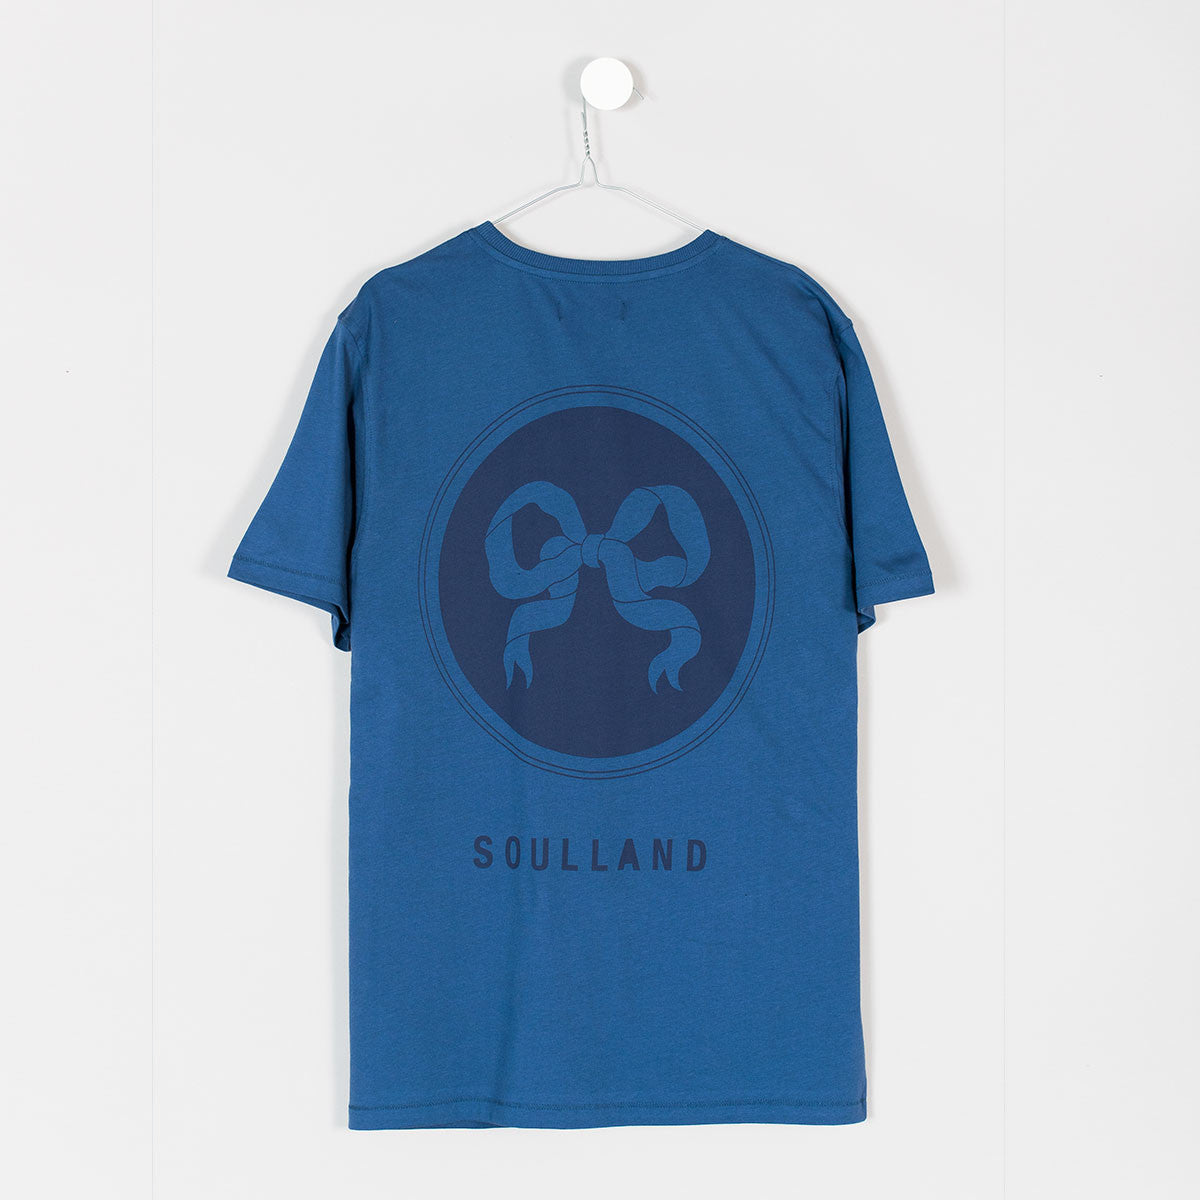 Soulland Ribbon T-Shirt – Indigo Blue - 2